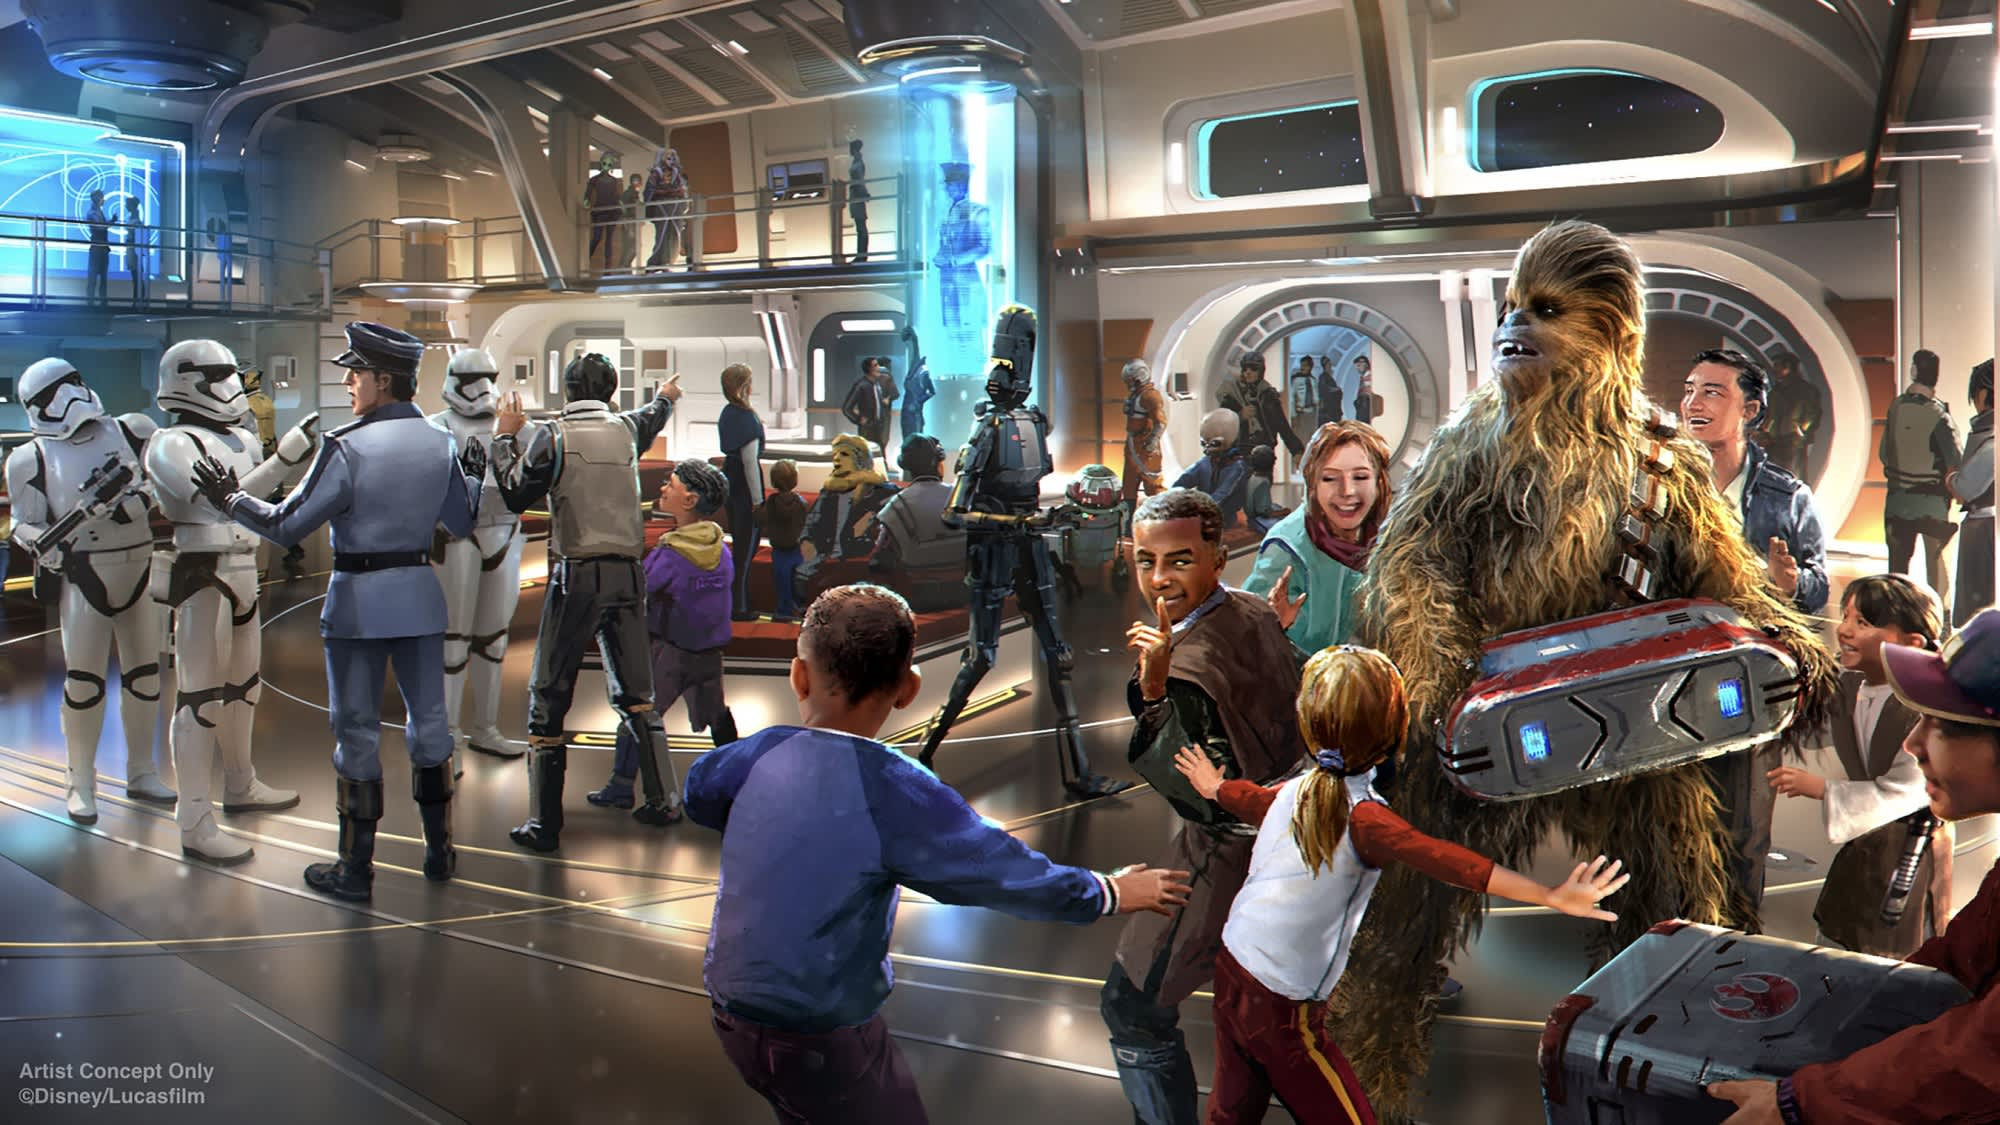 Disney's Galactic Starcruiser launches in March, bookings start in October